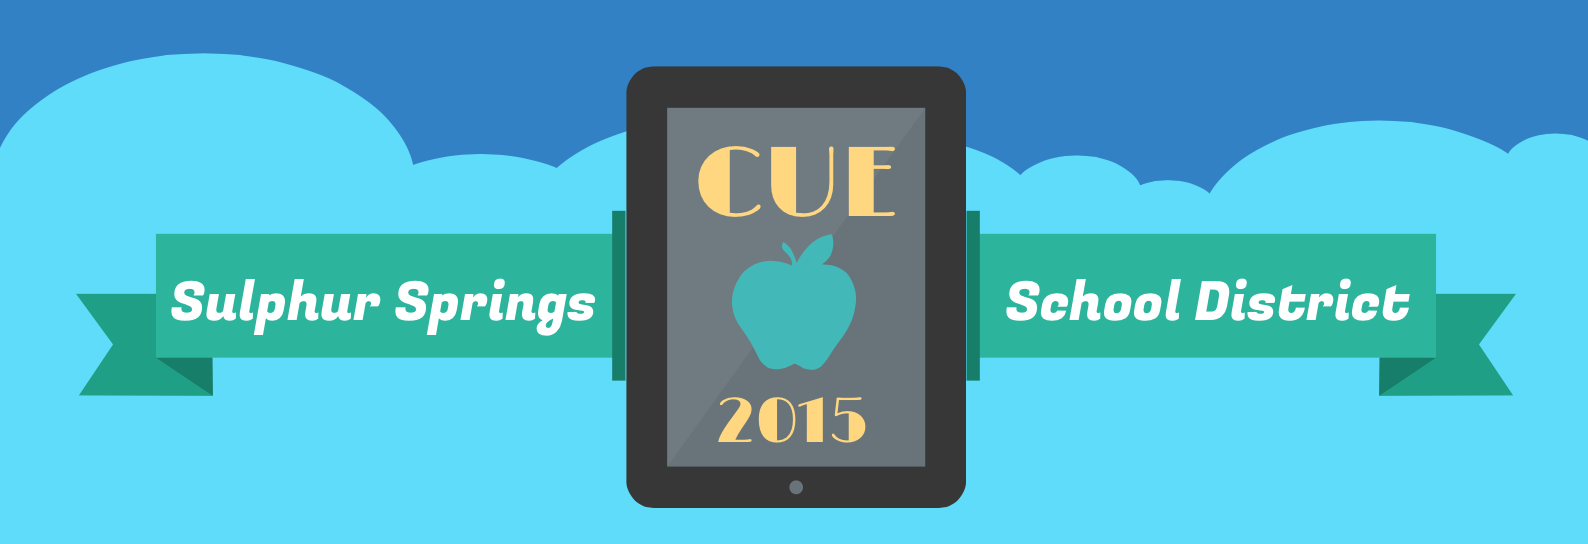 Educational Services / CUE 2015